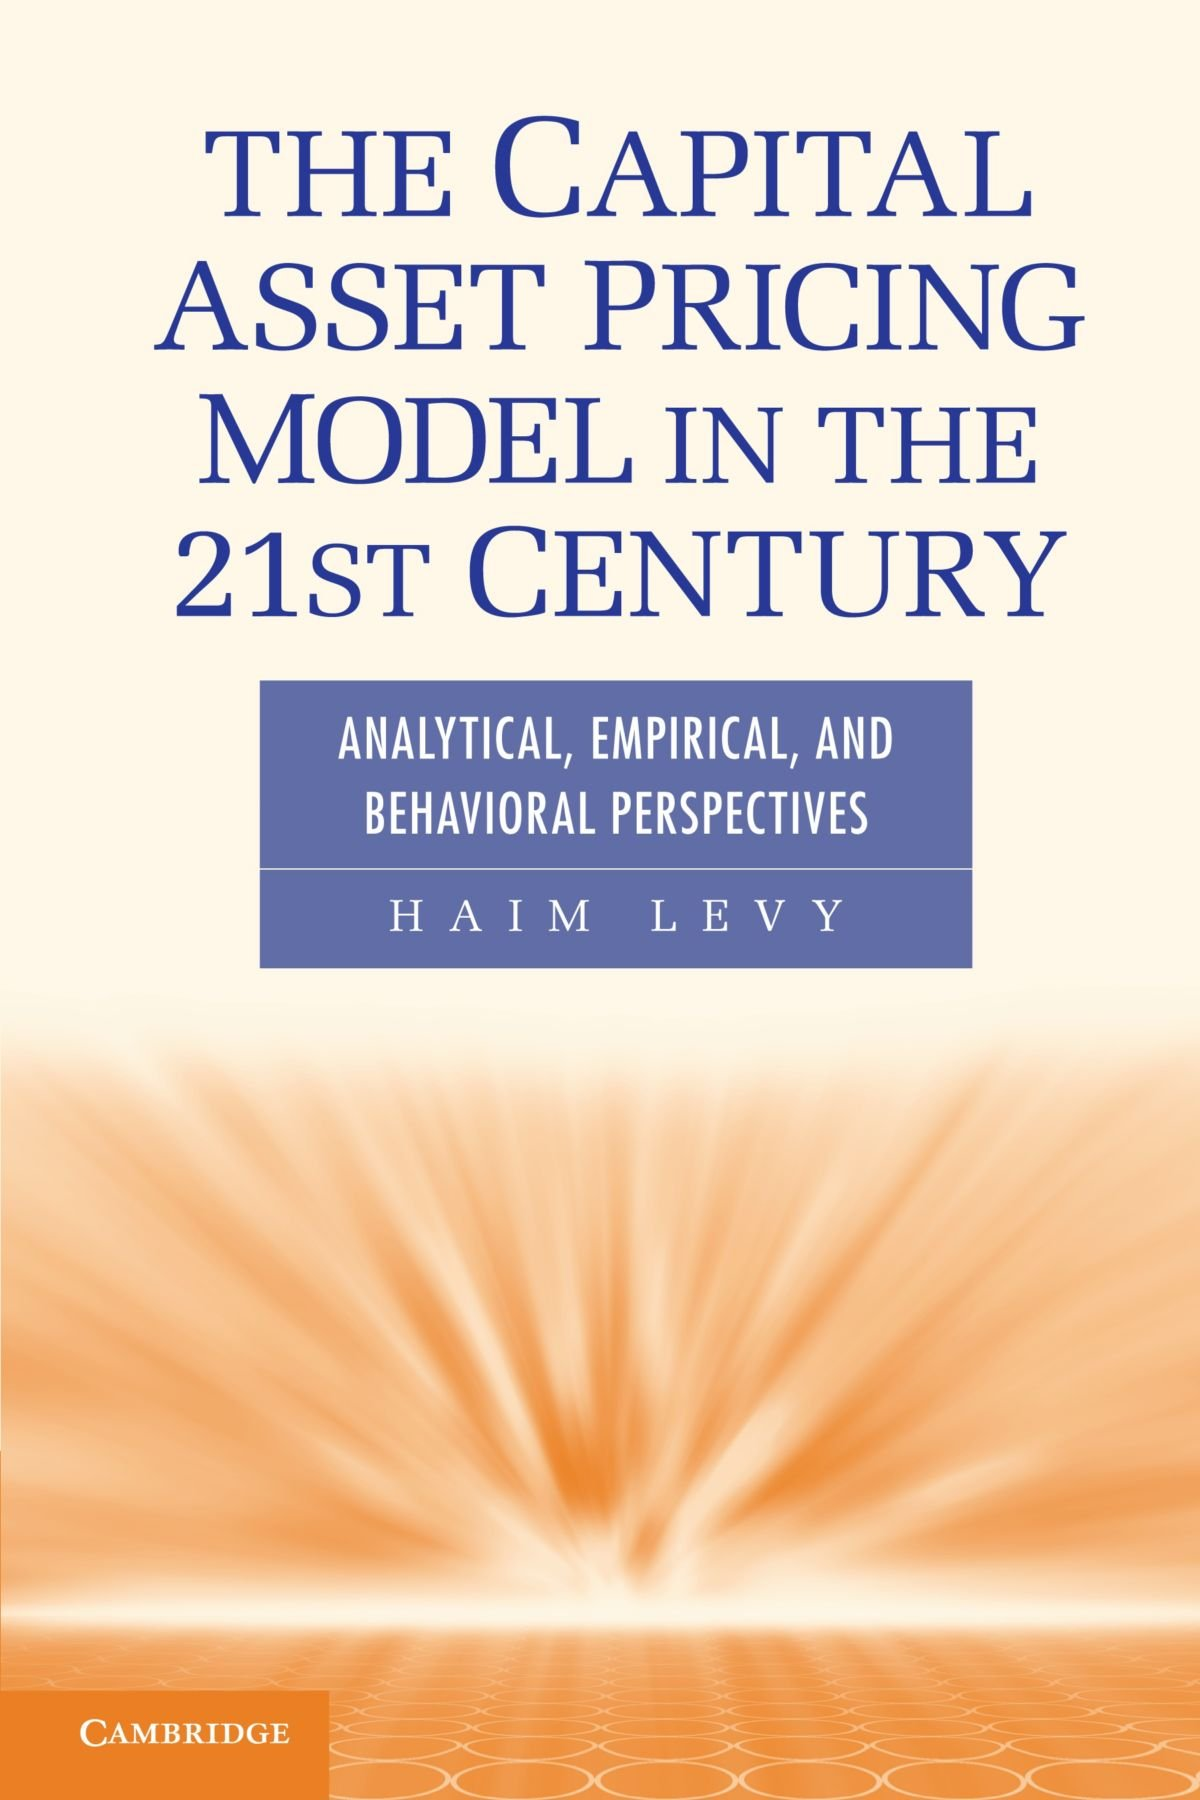 The Capital Asset Pricing Model in the 21st Century: Analytical, Empirical, and Behavioral Perspectives pdf